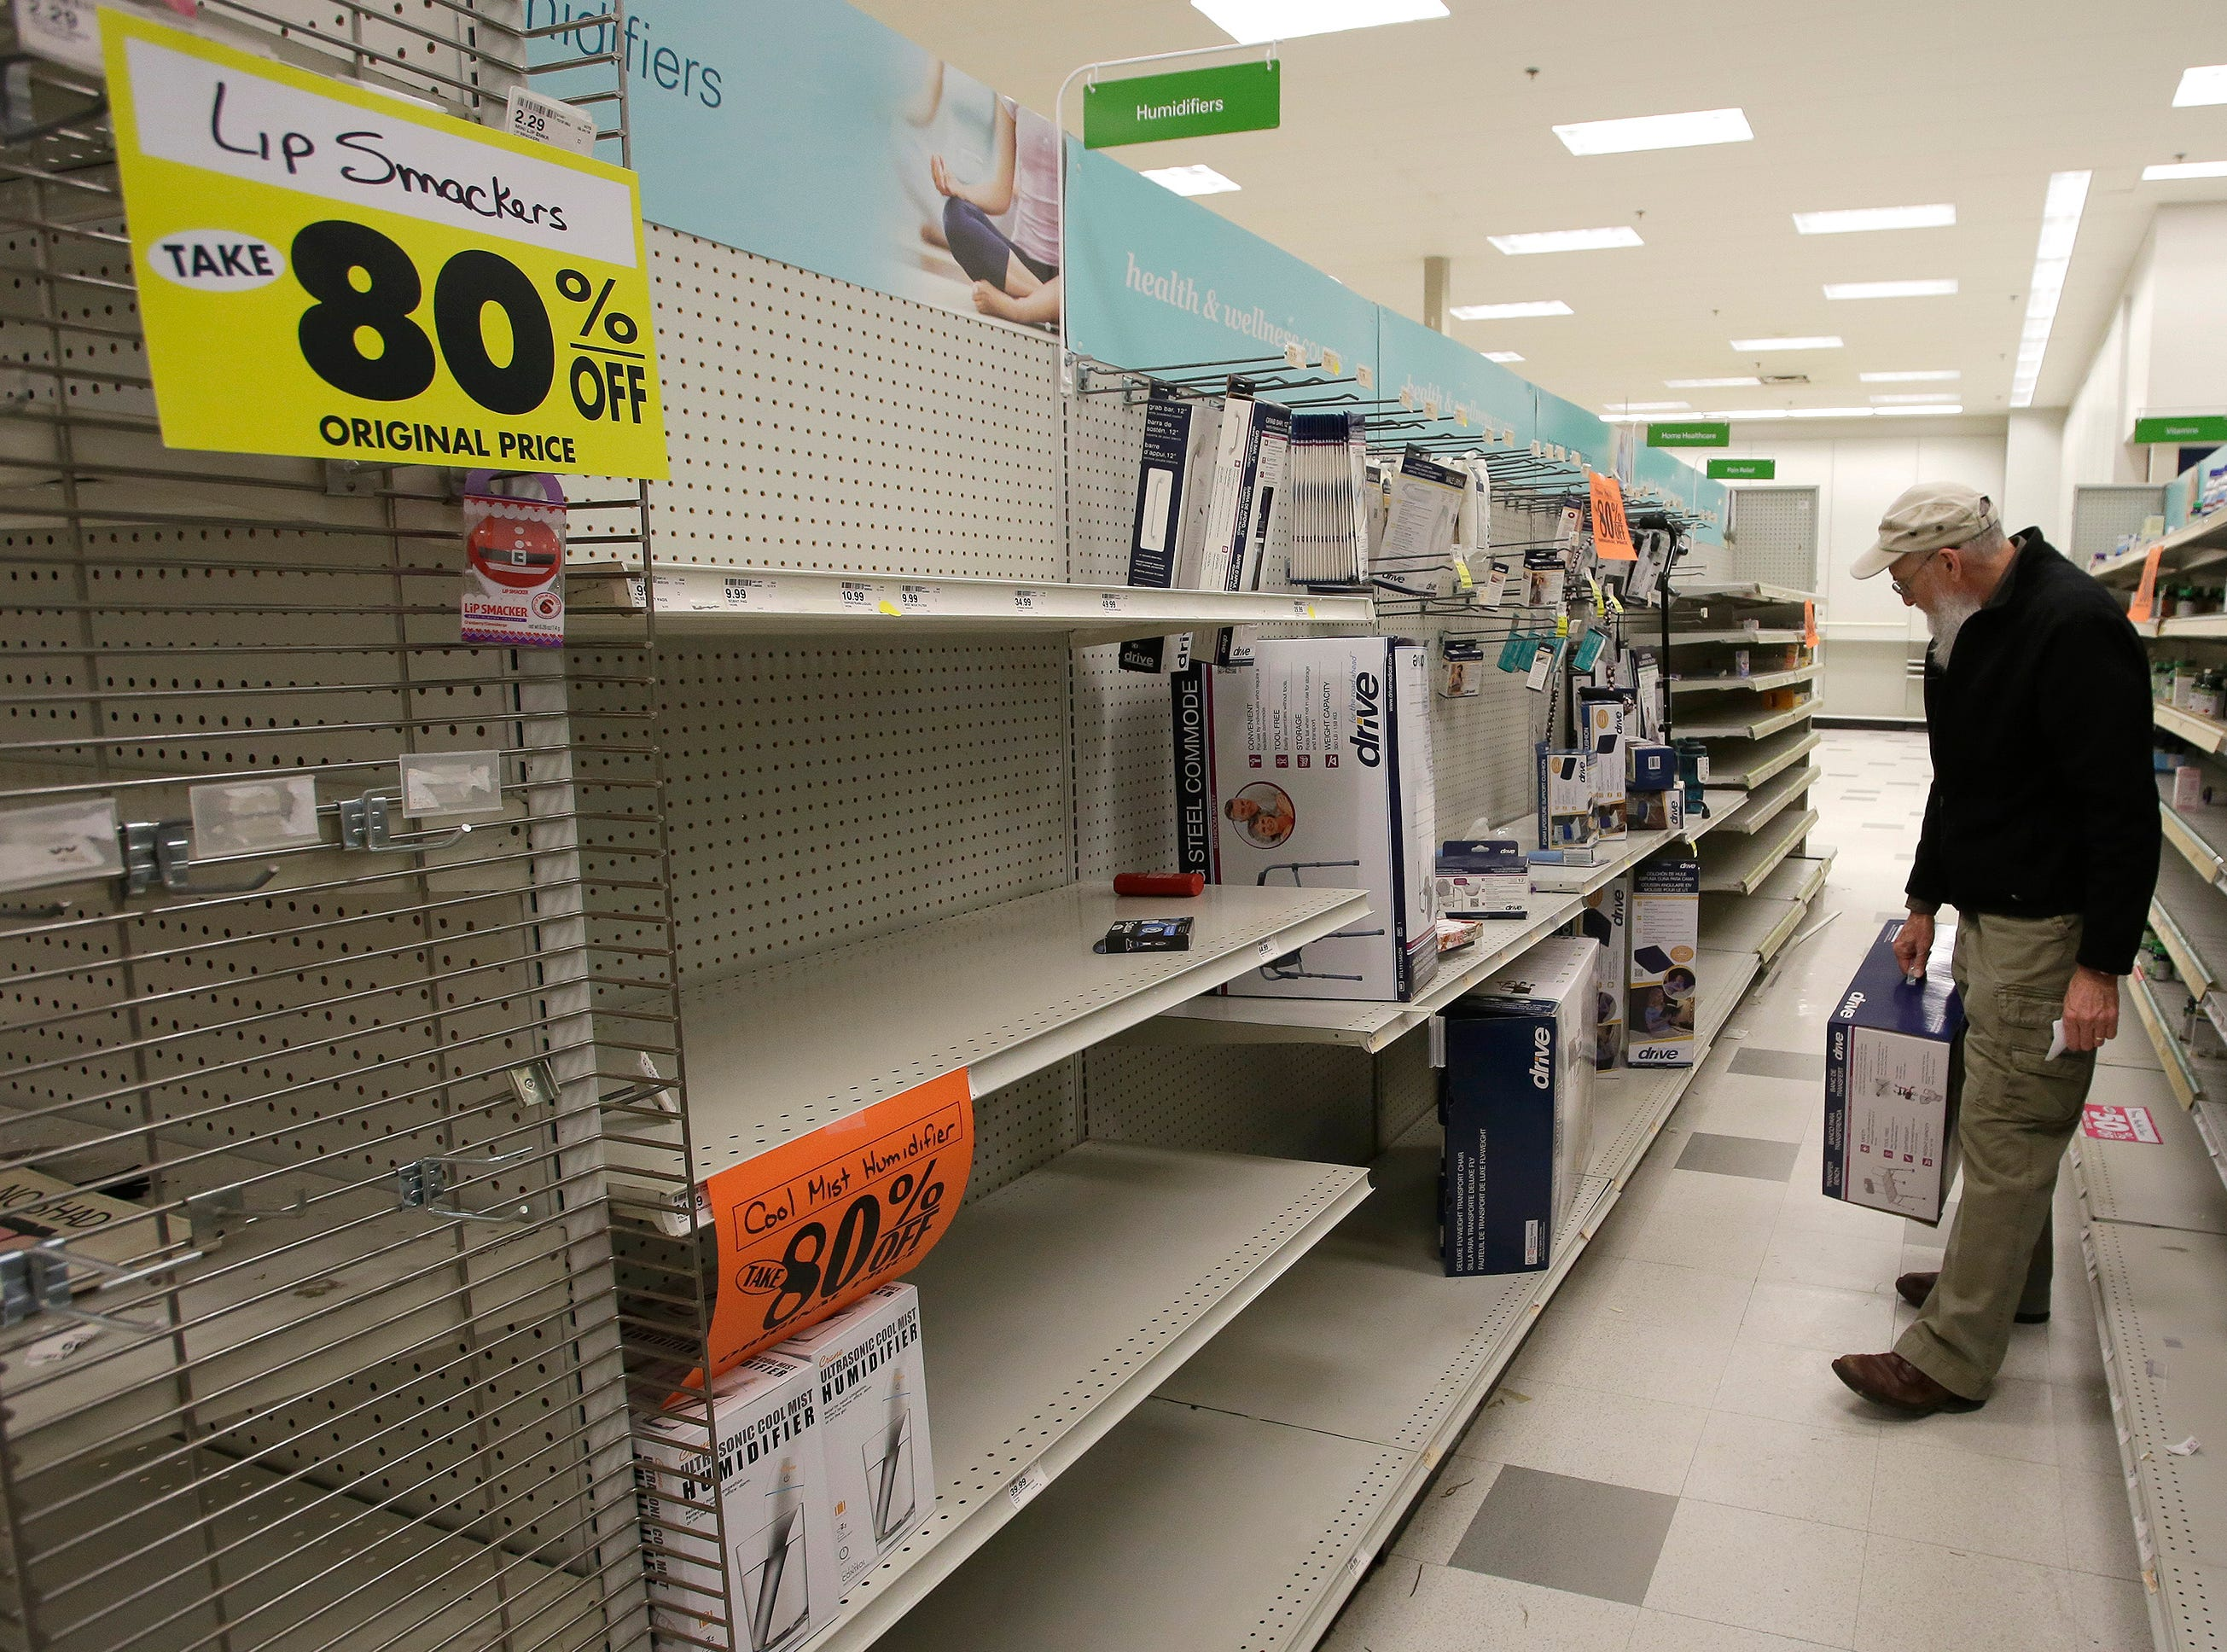 Chuck, who did not want his last name used, looks over nearly barren shelves at ShopKo, Saturday, May 11, 2019, in Sheboygan, Wis. The store is in its last weekend in Sheboygan.